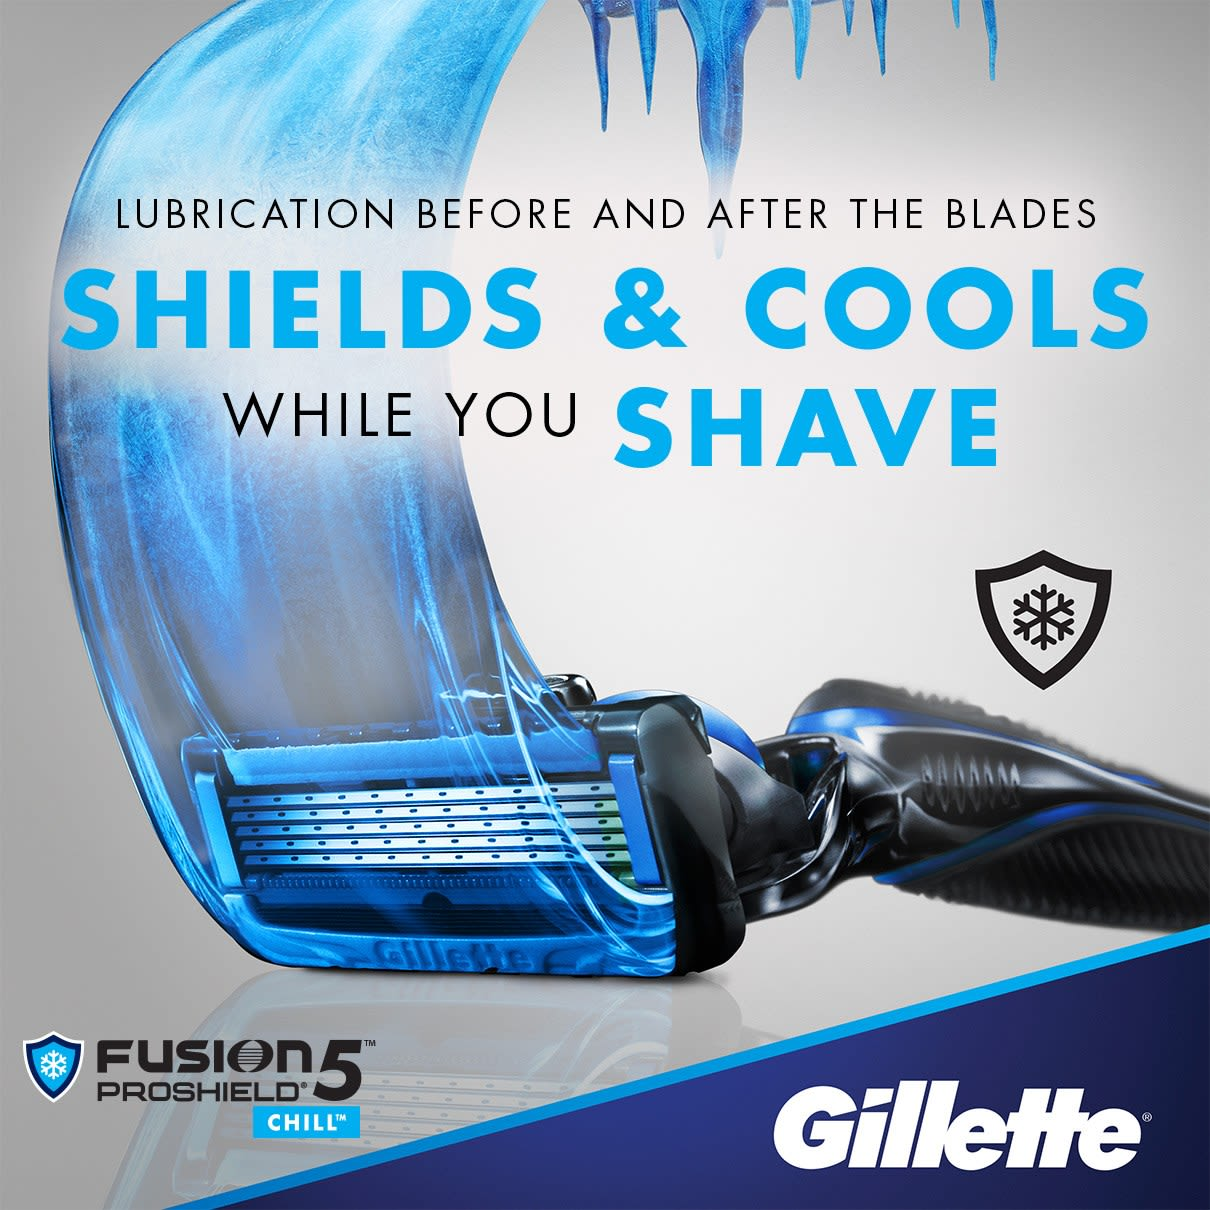 lubrication before and after the blades shields & cools while you shave